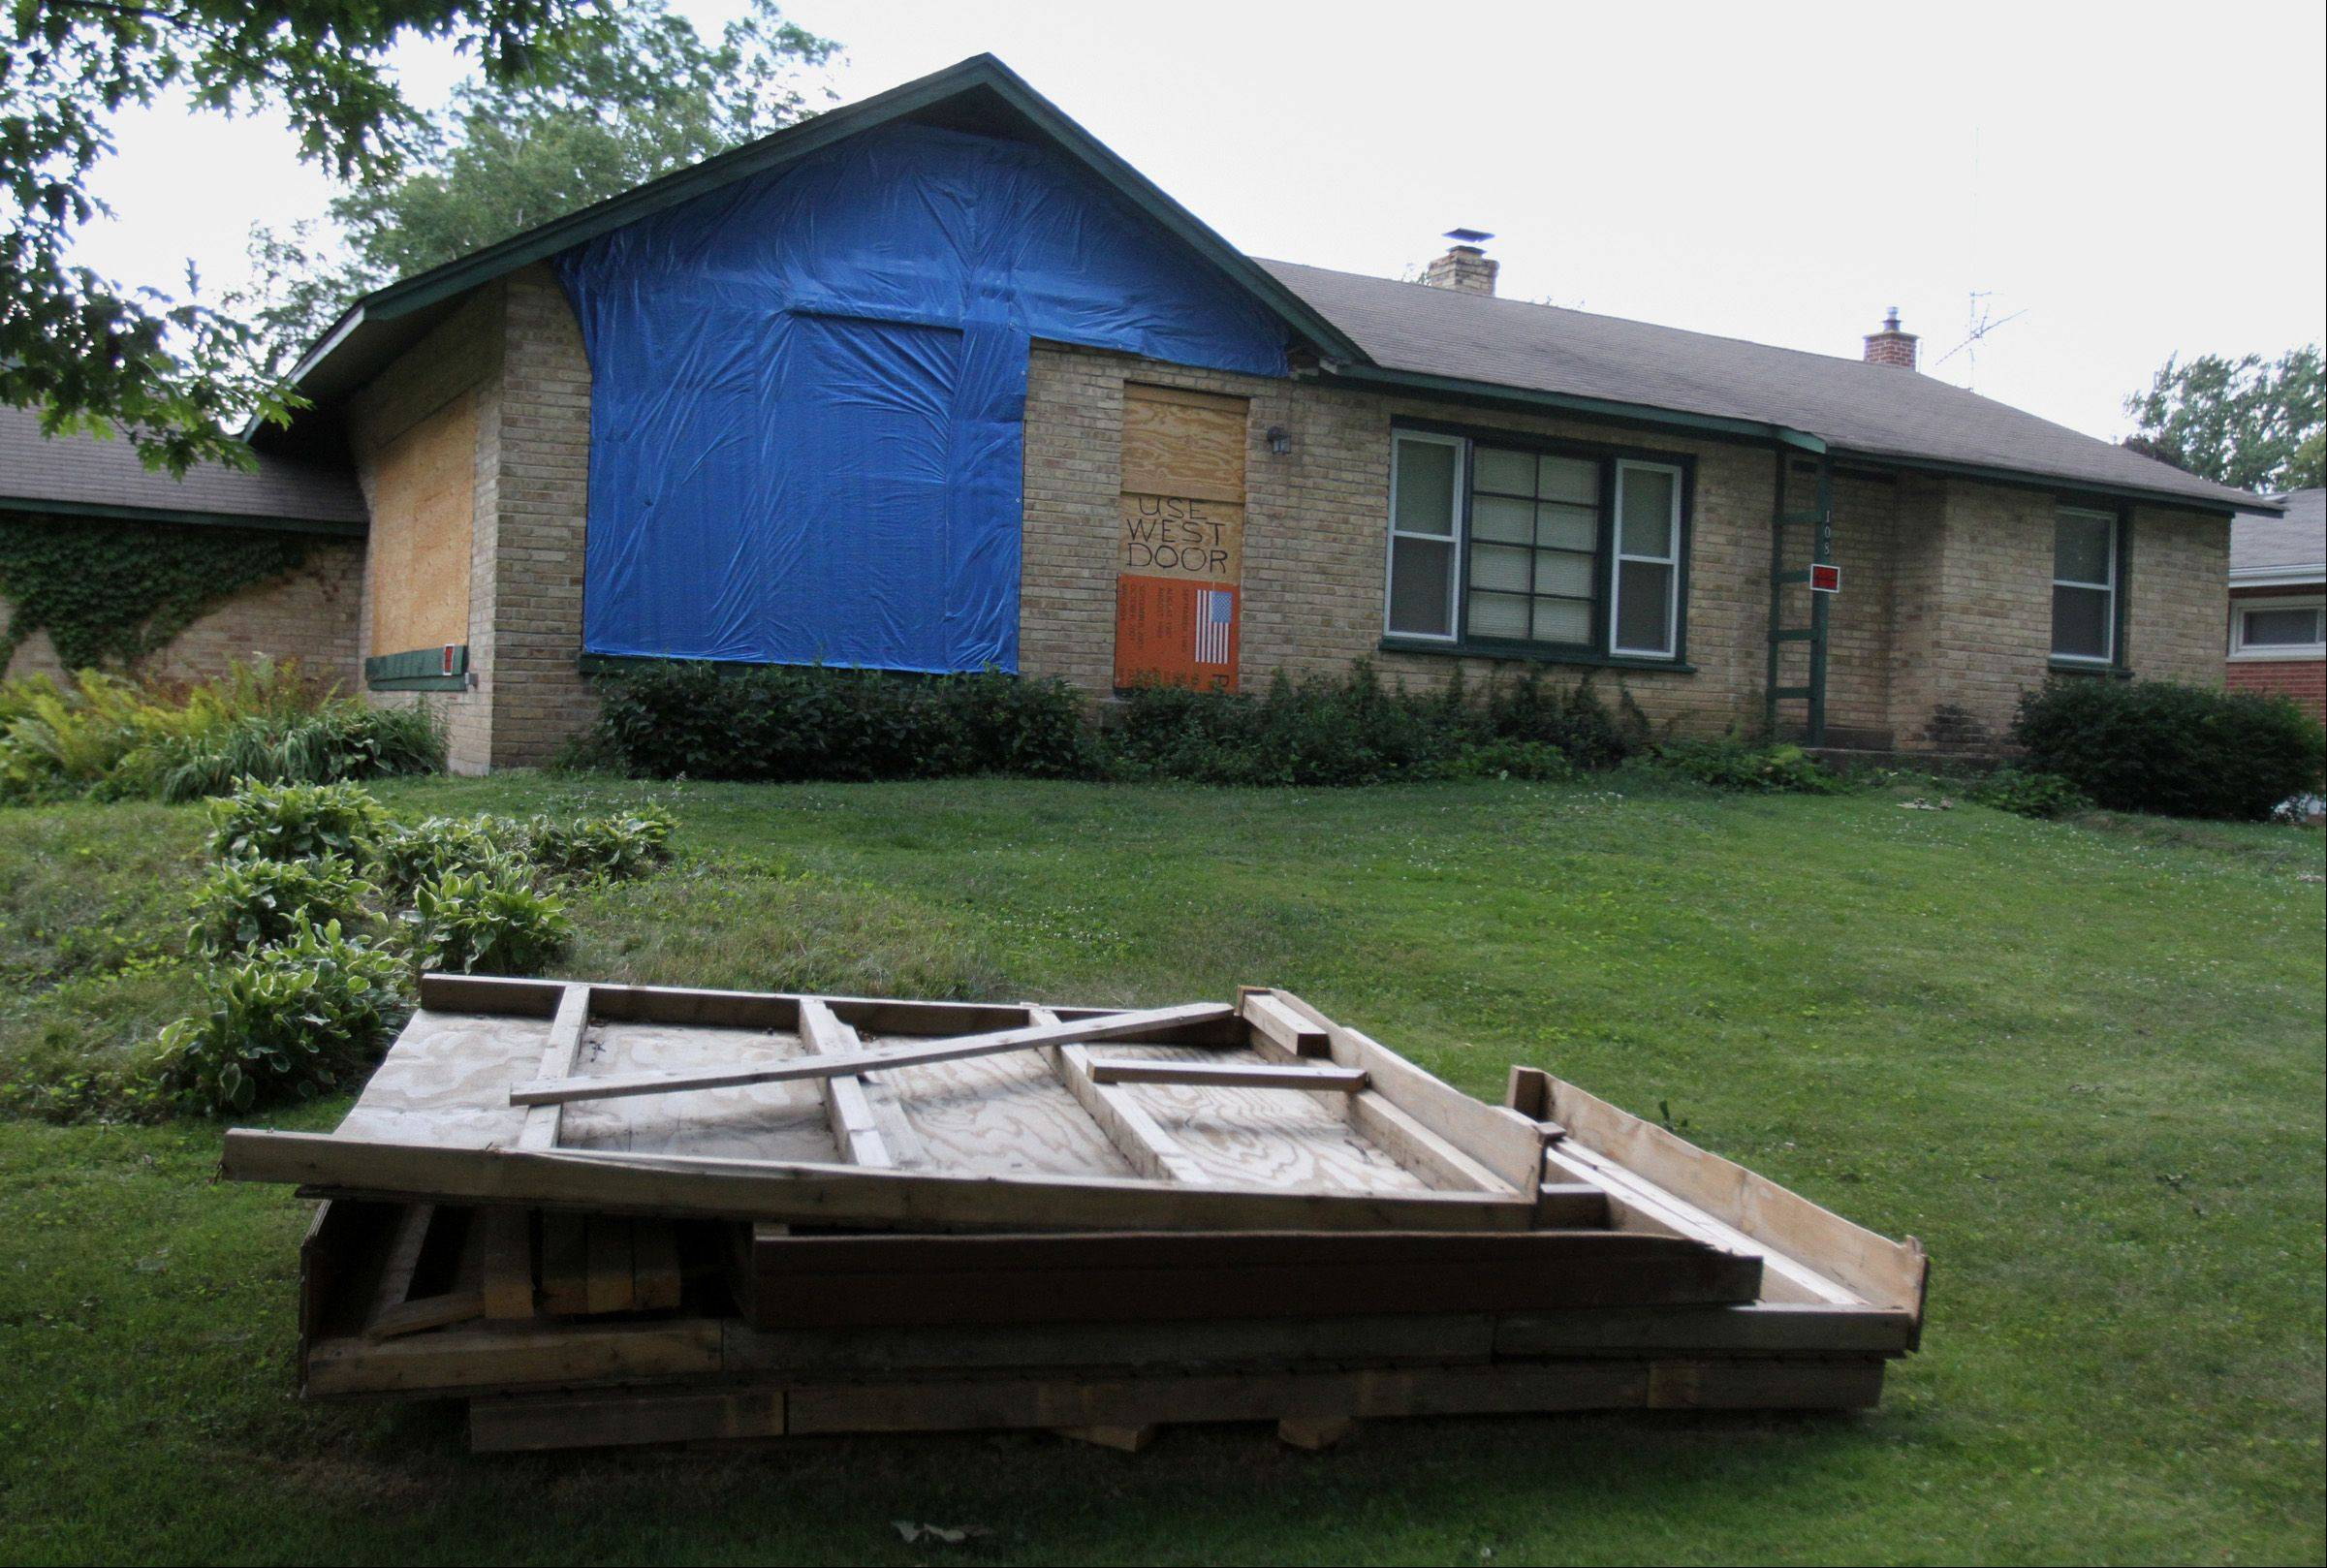 Former Palatine councilman Warren Kostka�s house on Forest Avenue in Palatine. A Cook County judge Wednesday gave Kostka 30 days to remove a tarp and boards from his house and another 30 to come into full compliance with village codes.